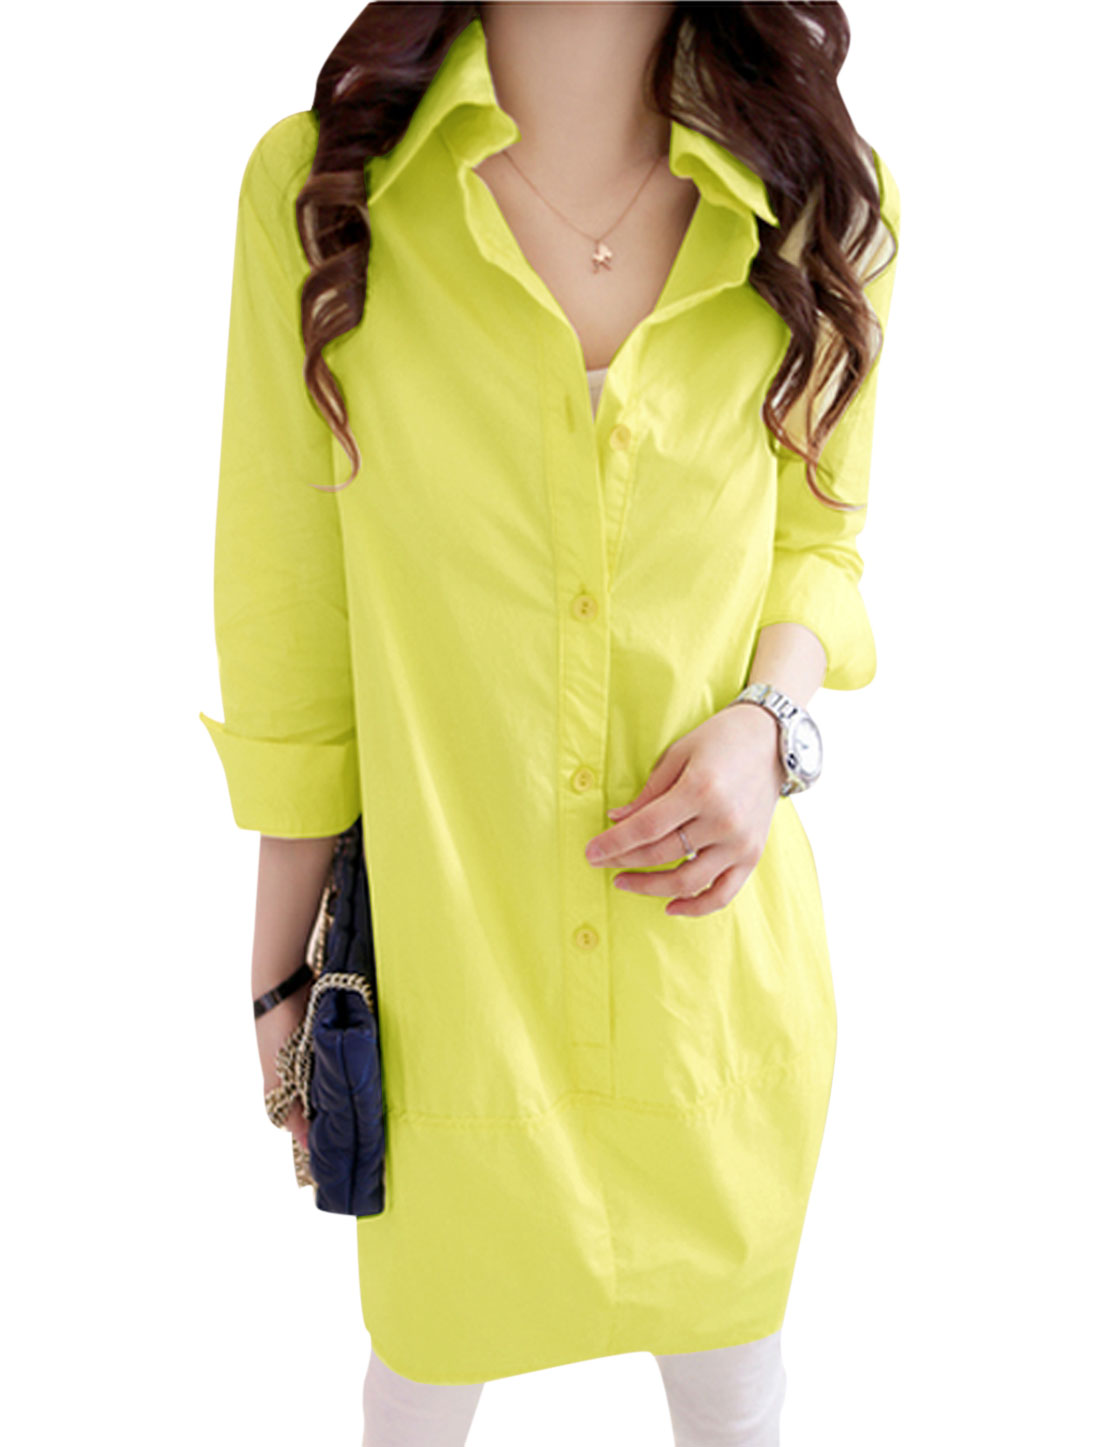 Lady 3/4 Sleeve Single Breasted Tunic Shirt Lime Yellow XS